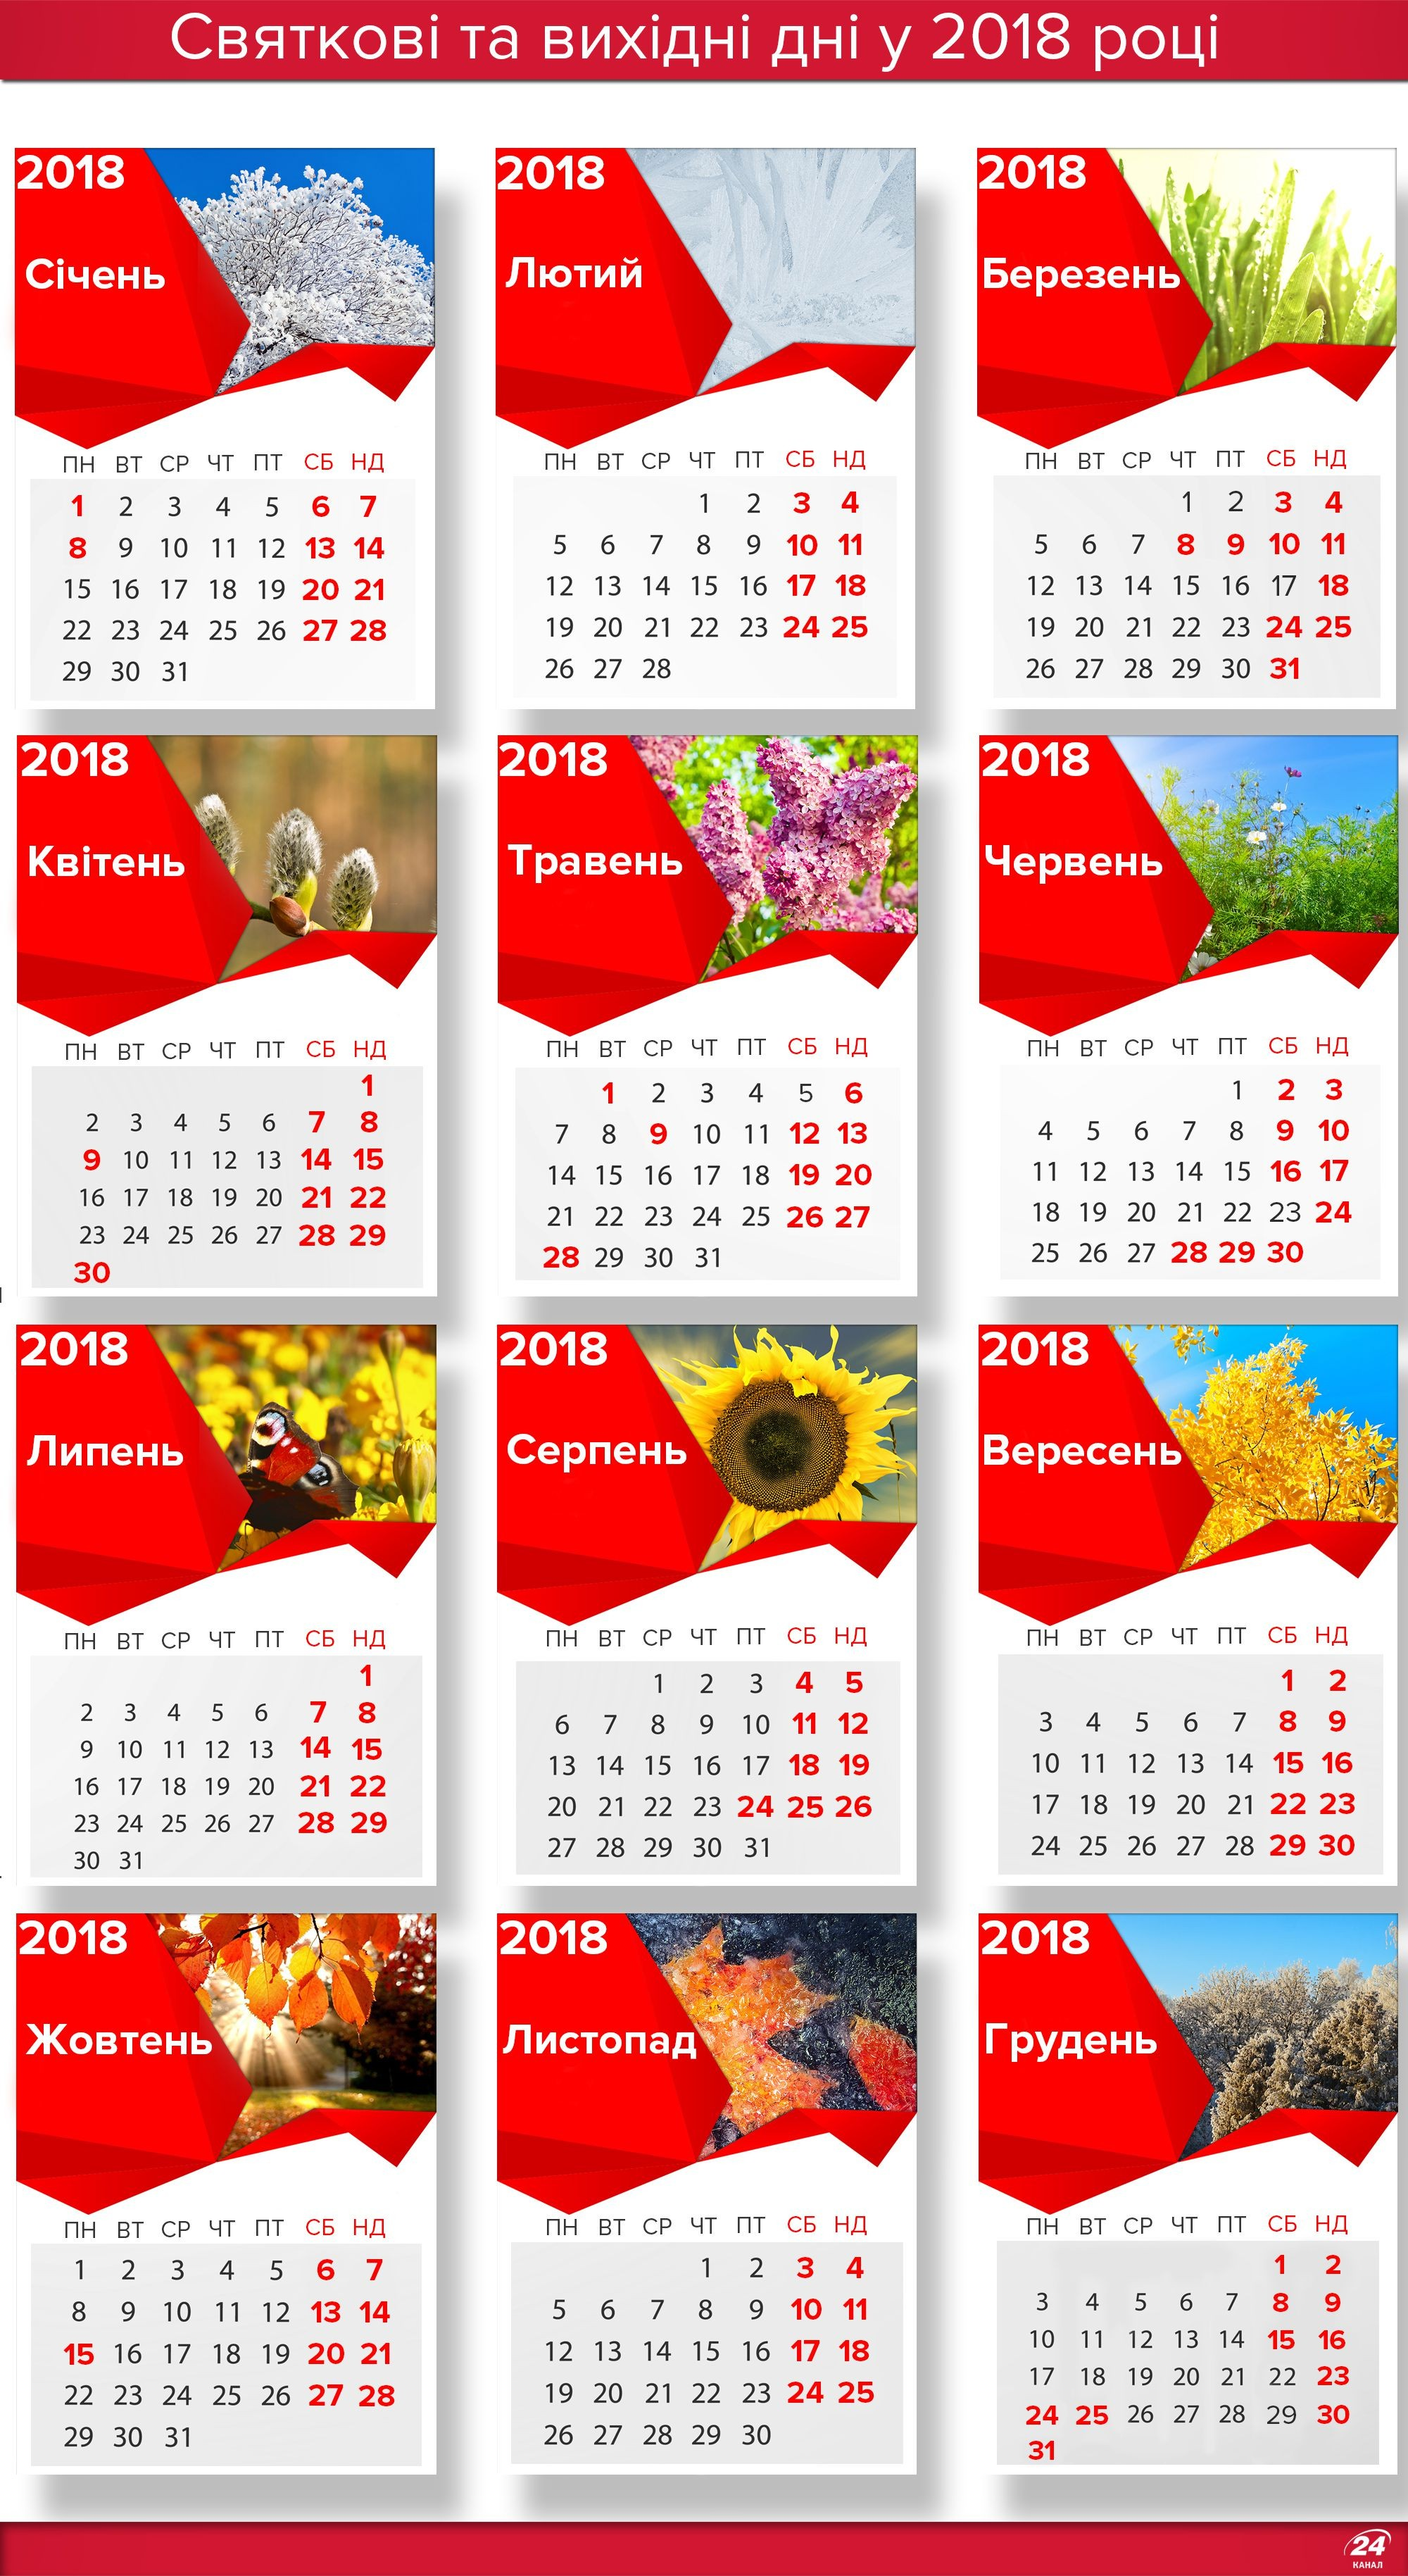 National Day Calendar March Mejores Y Más Novedosos 2018 Holidays In Ukraine Of National Day Calendar March Recientes National Food Days today Holiday Foods Calendar 2019